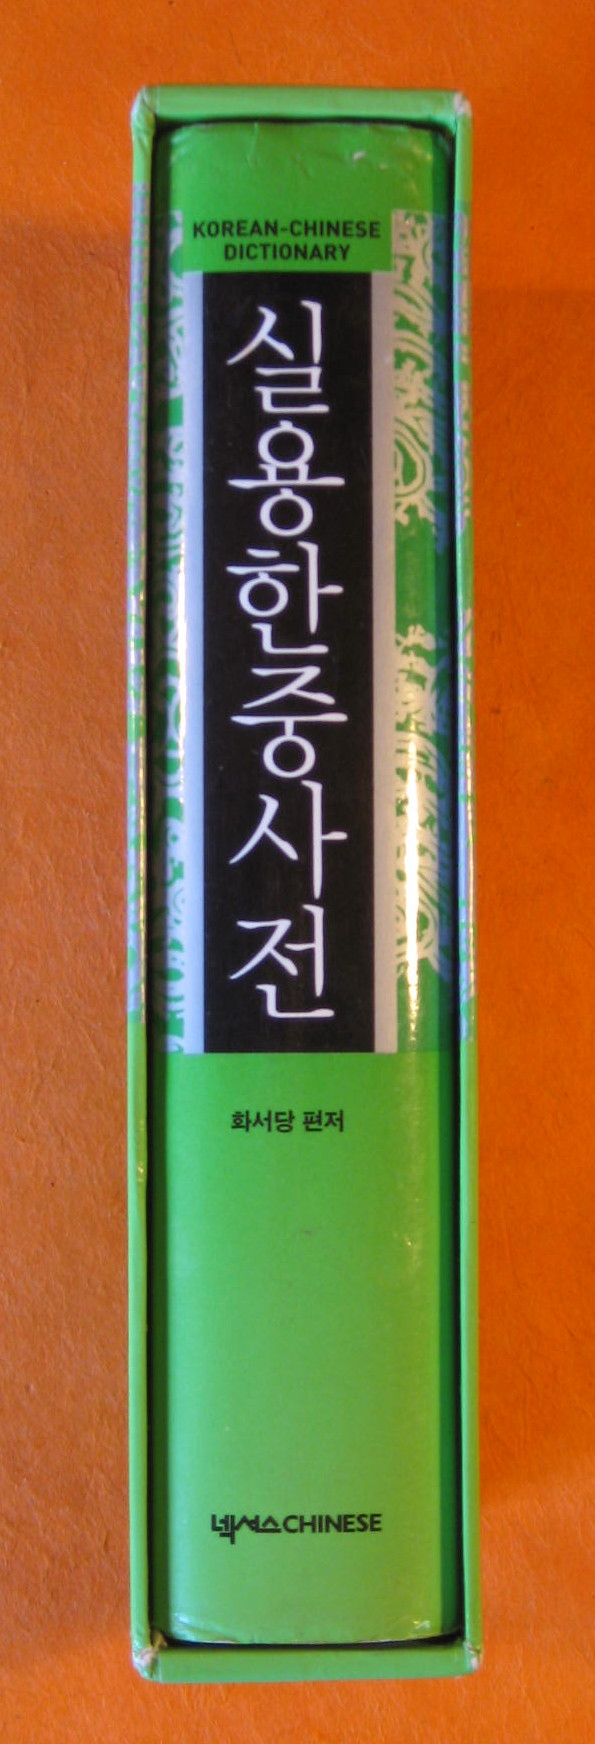 Korean - Chinese Dictionary, No Author